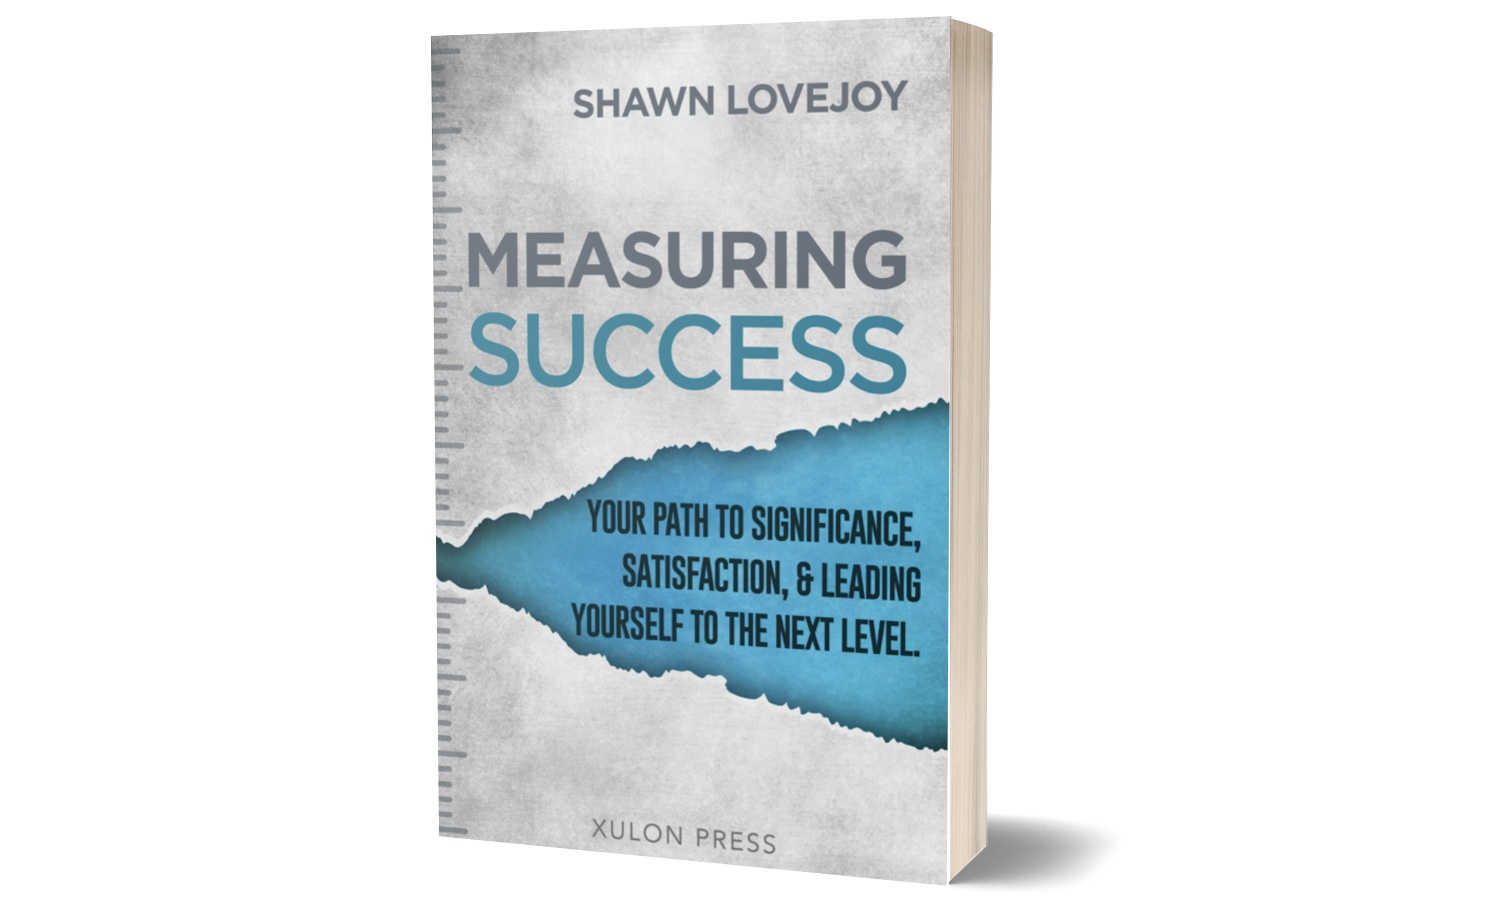 Measuring-Success-Shawn-Lovejoy-Book-Image